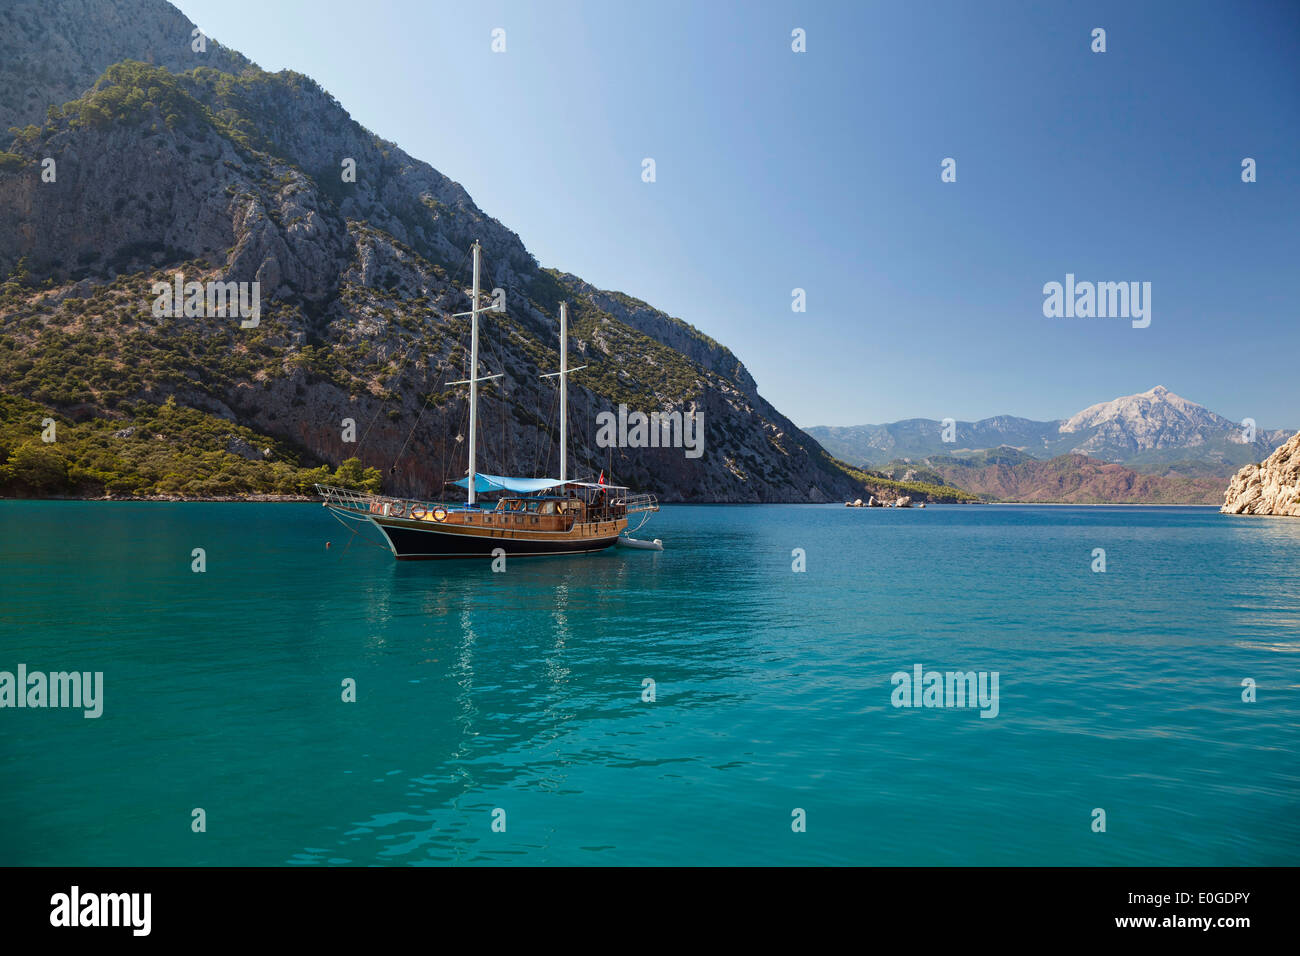 Sailing along the lycian coast, Ceneviz bay near Cirali, Lycia, Mediterranean Sea, Turkey, Asia Stock Photo